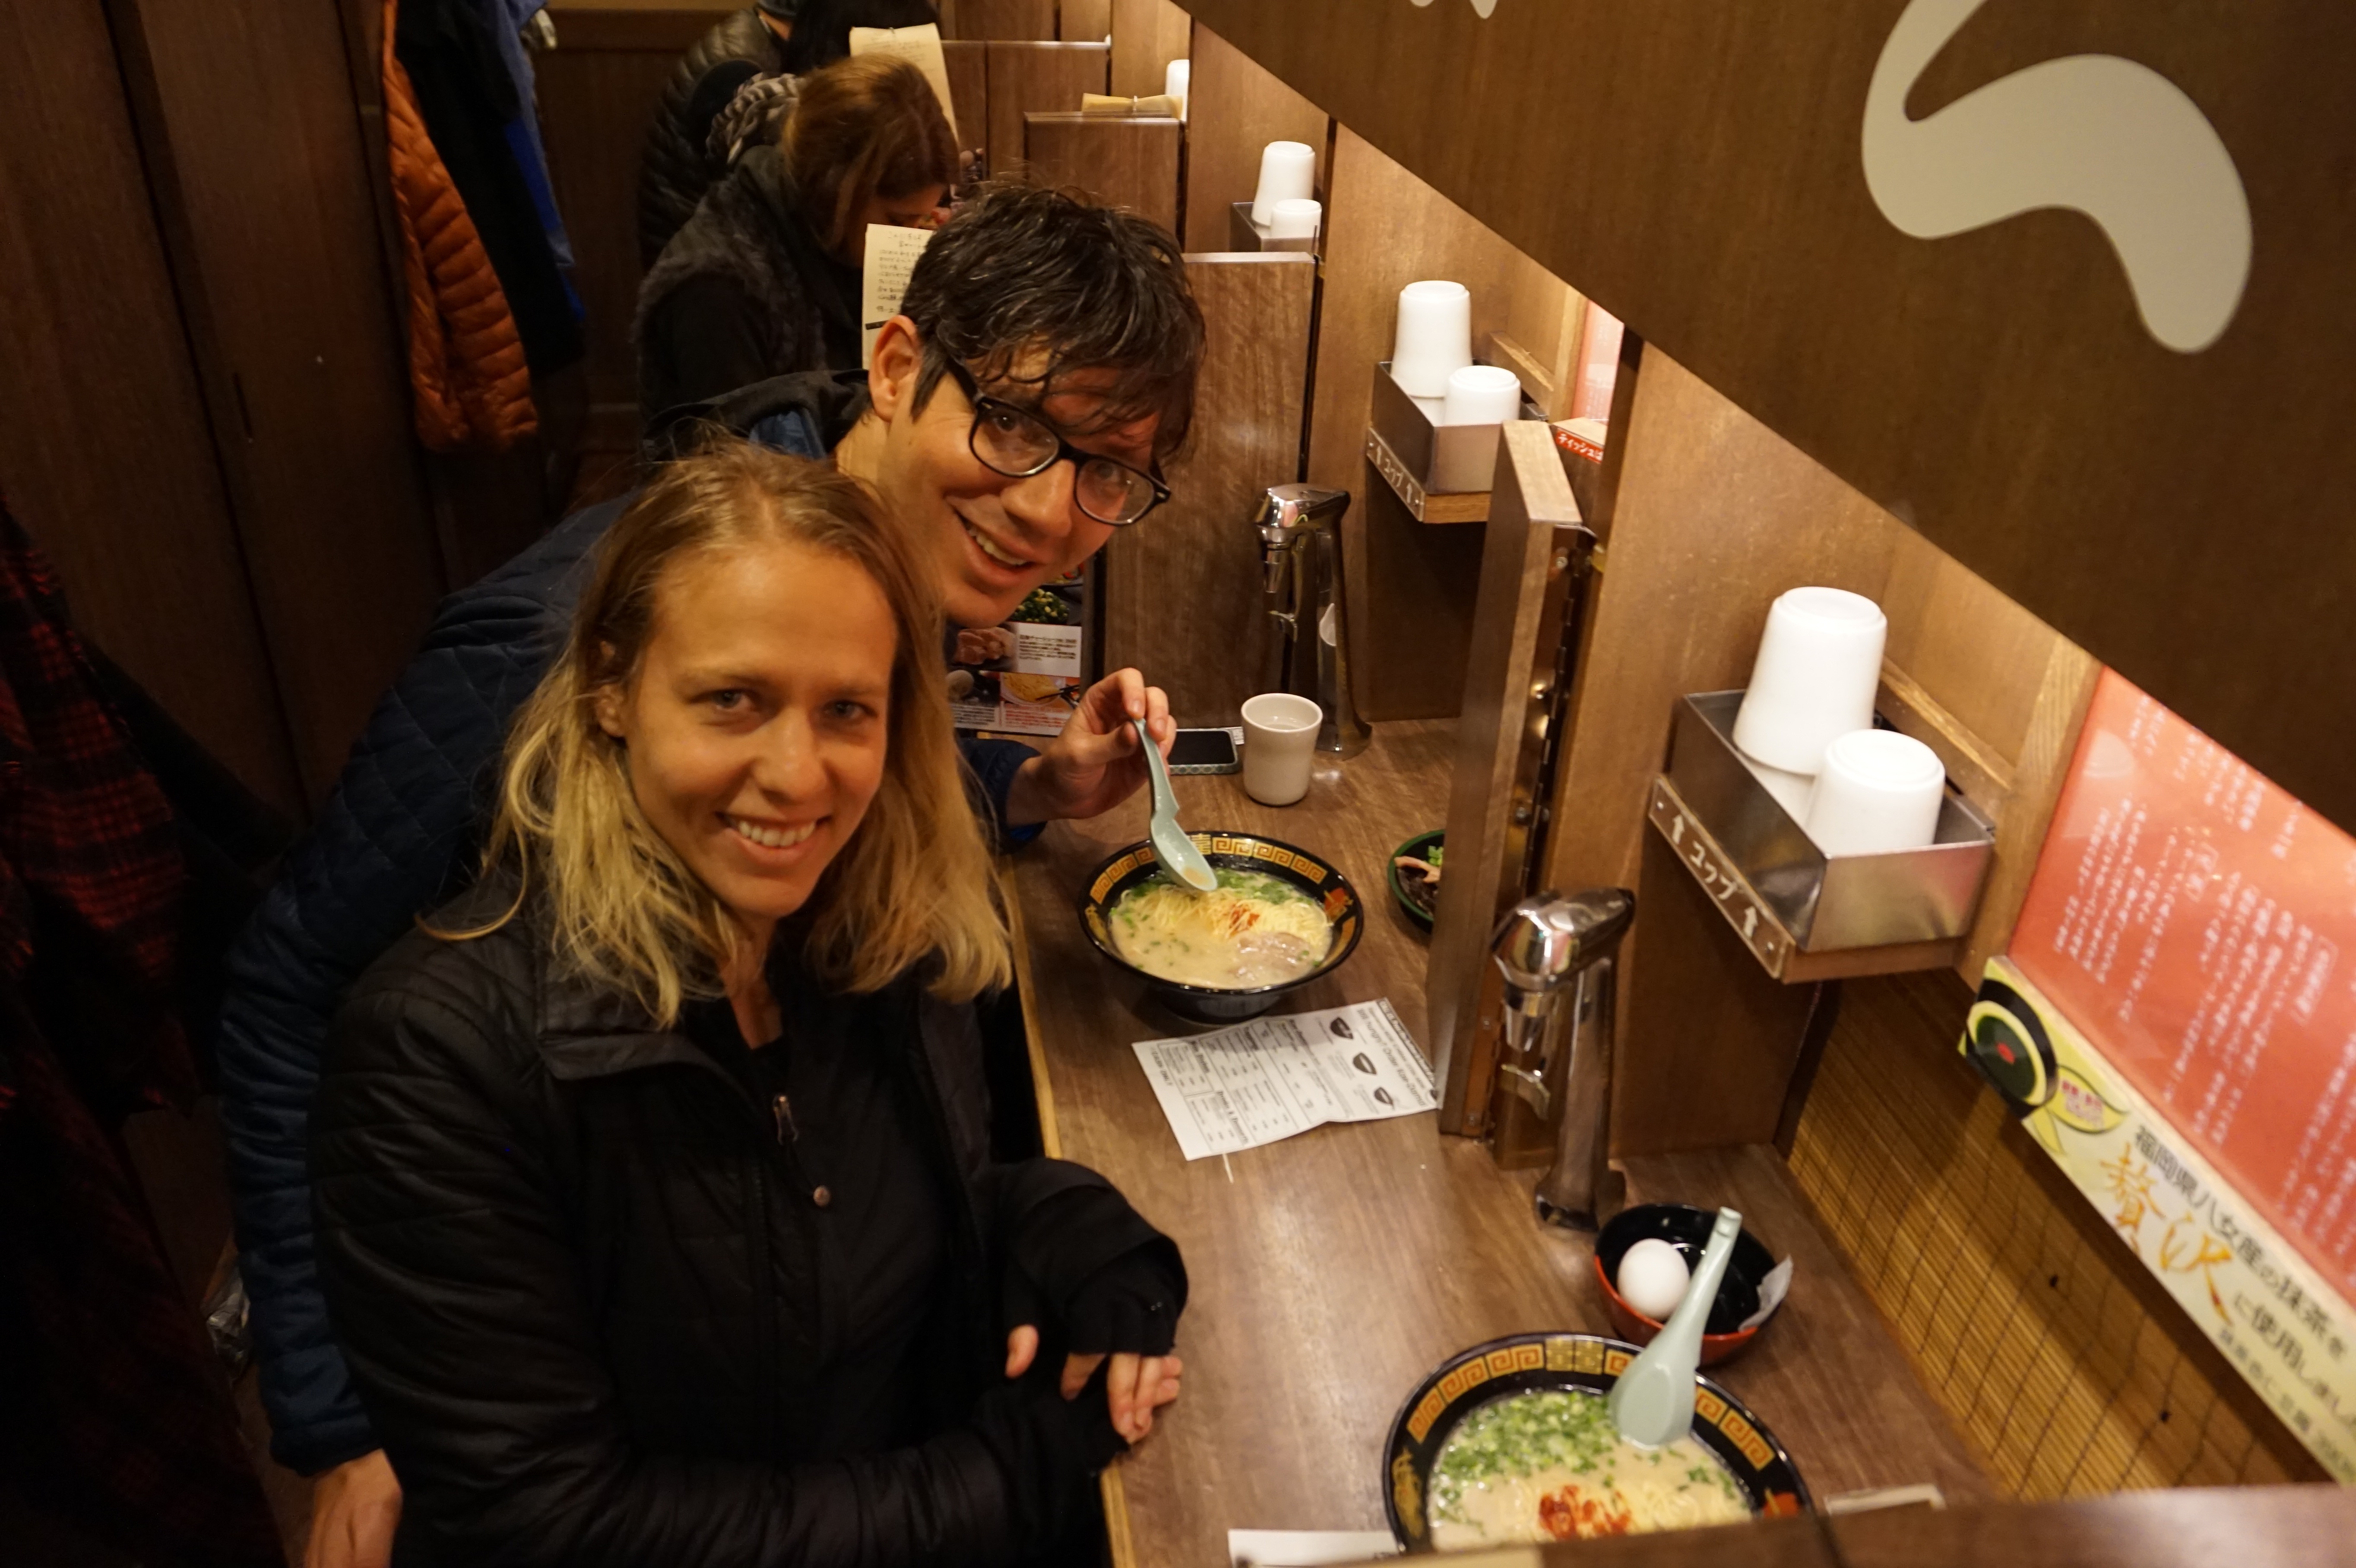 Enjoying Ramen at Ichiran